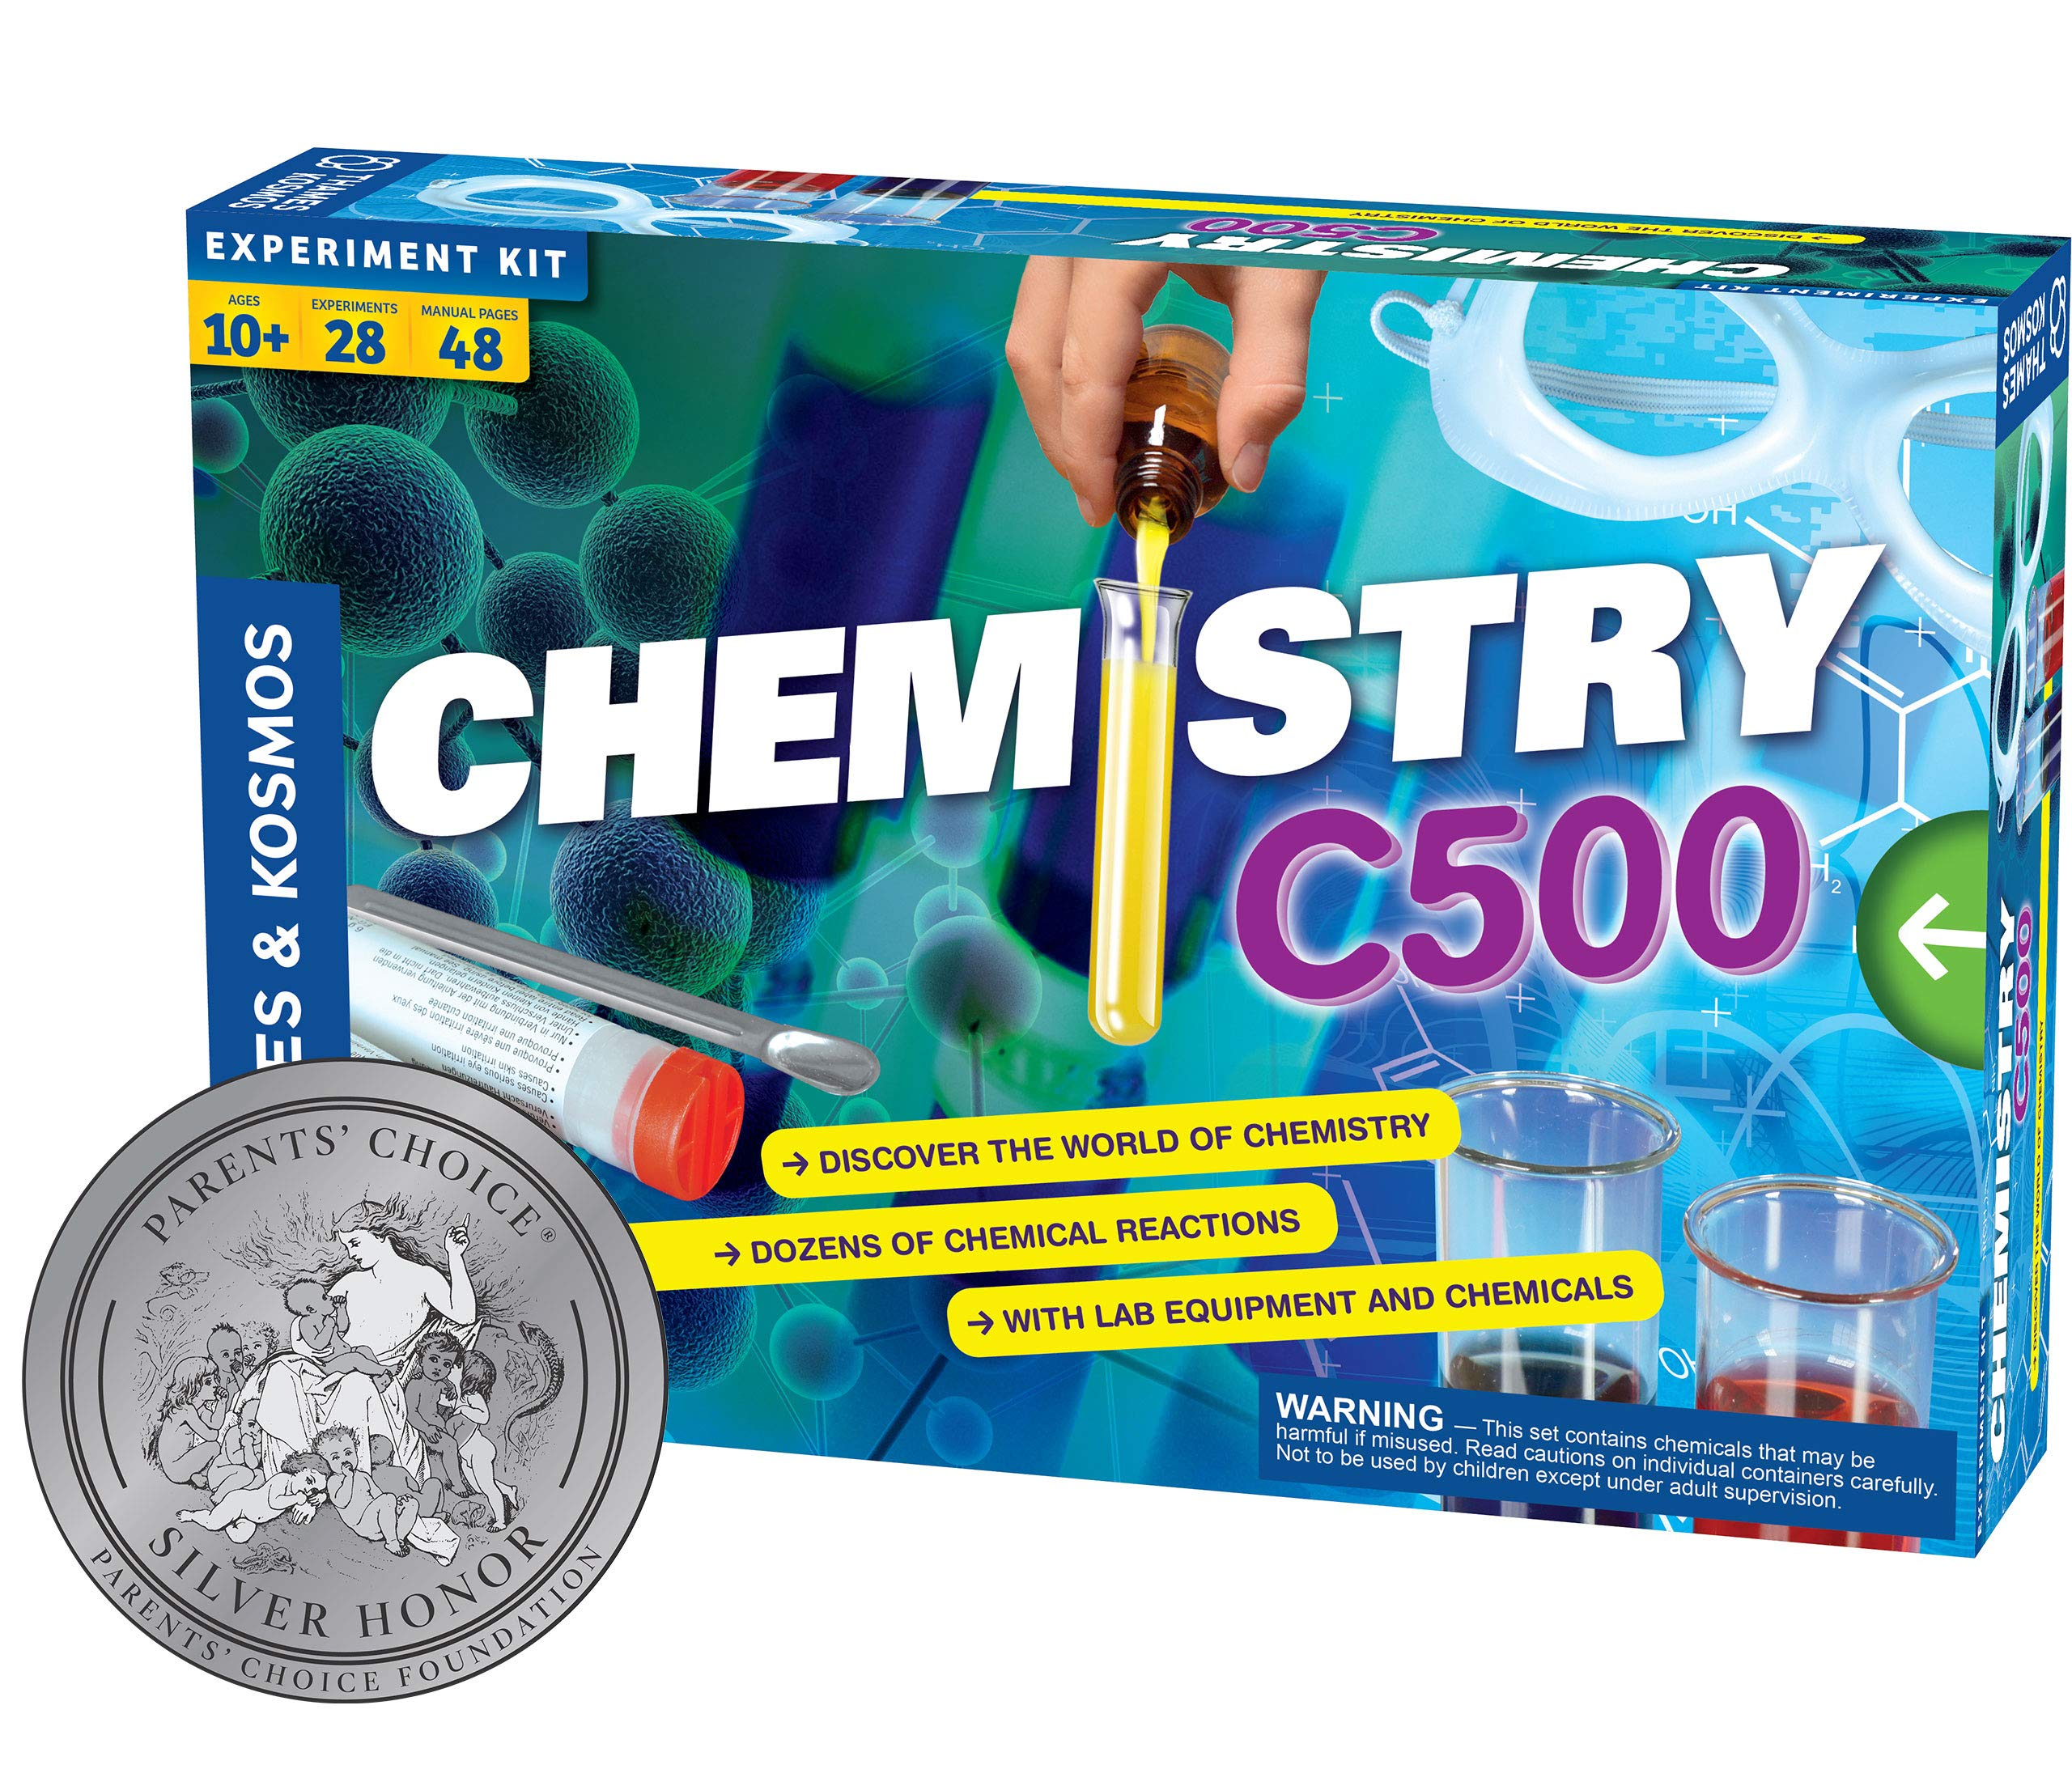 """Thames & Kosmos Chemistry Chem C500 Science Kit with 28 Guided Experiments 48 Page Science Guide Parents' Choice Silver Award Winner, 13.1"""" L x 2.6"""" W x 8.9"""" H"""